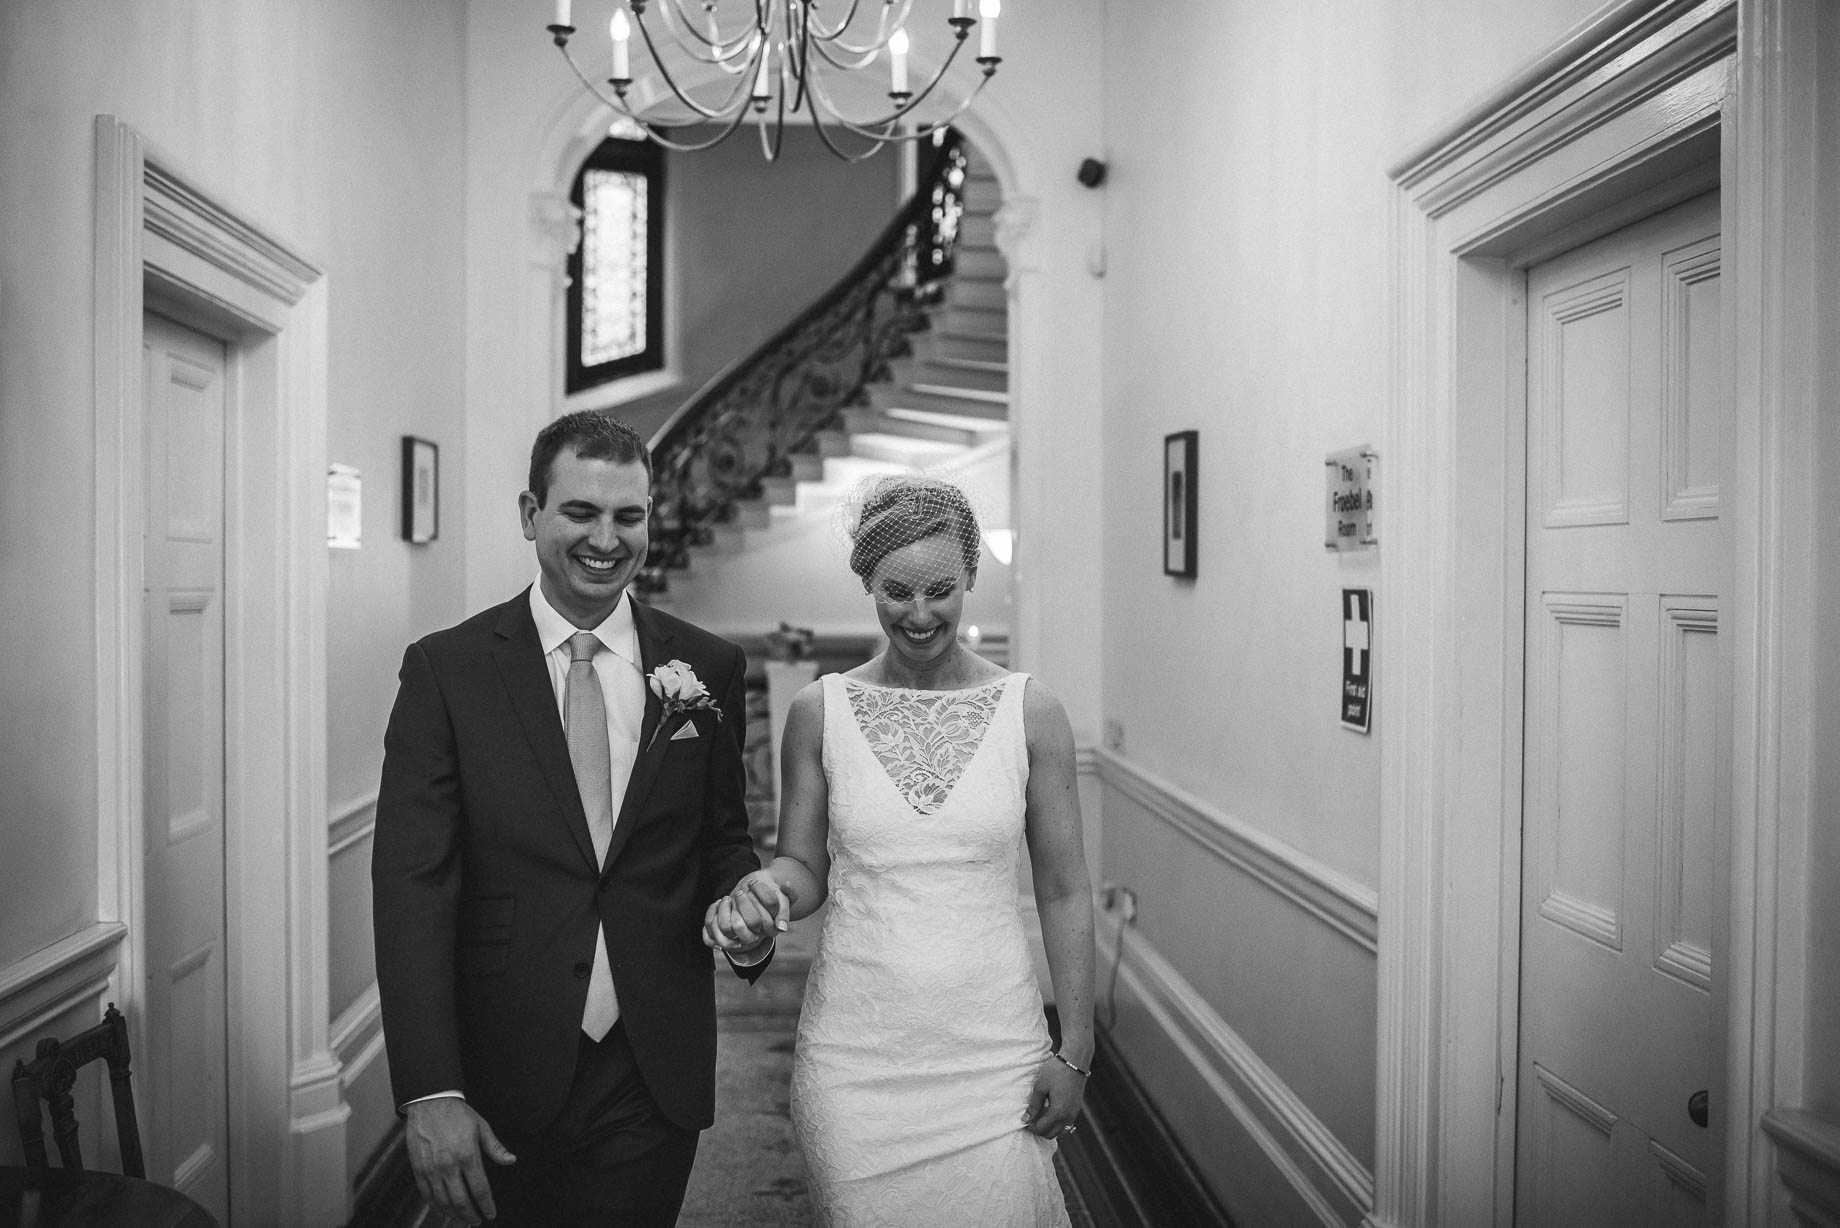 Bllomsbury House wedding photography in London - Katie and Taylor (71 of 156)